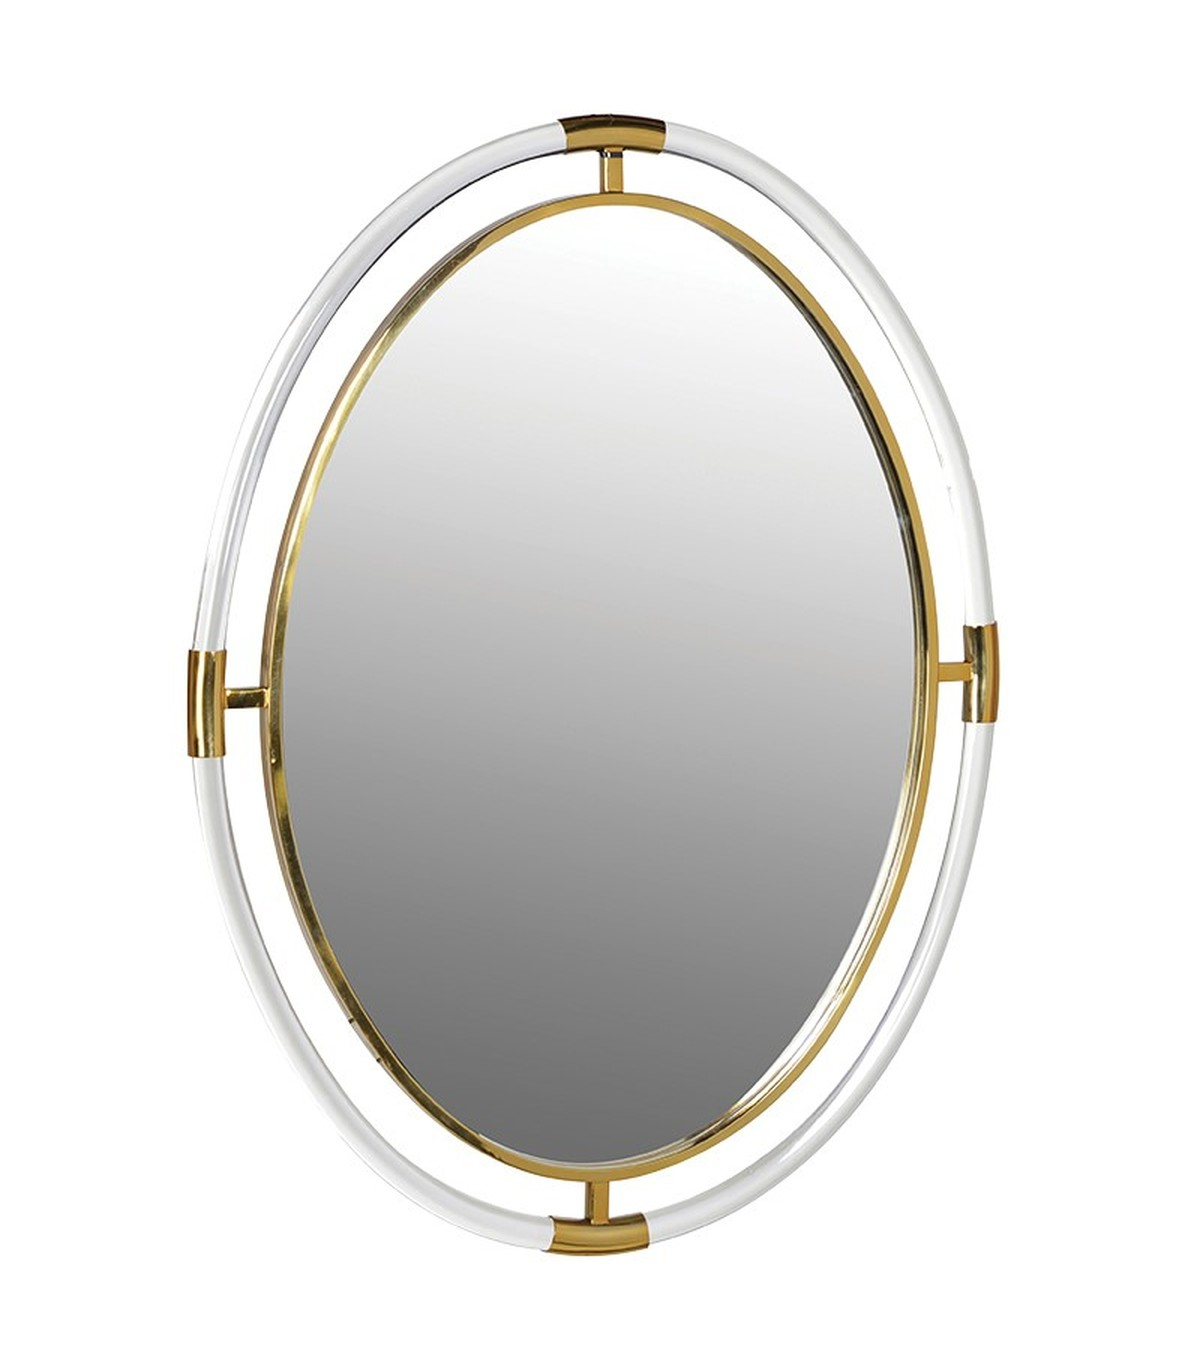 Acrylic Wall Mirrors Within Well Known Acrylic And Gold Oval Wall Mirror (View 6 of 20)